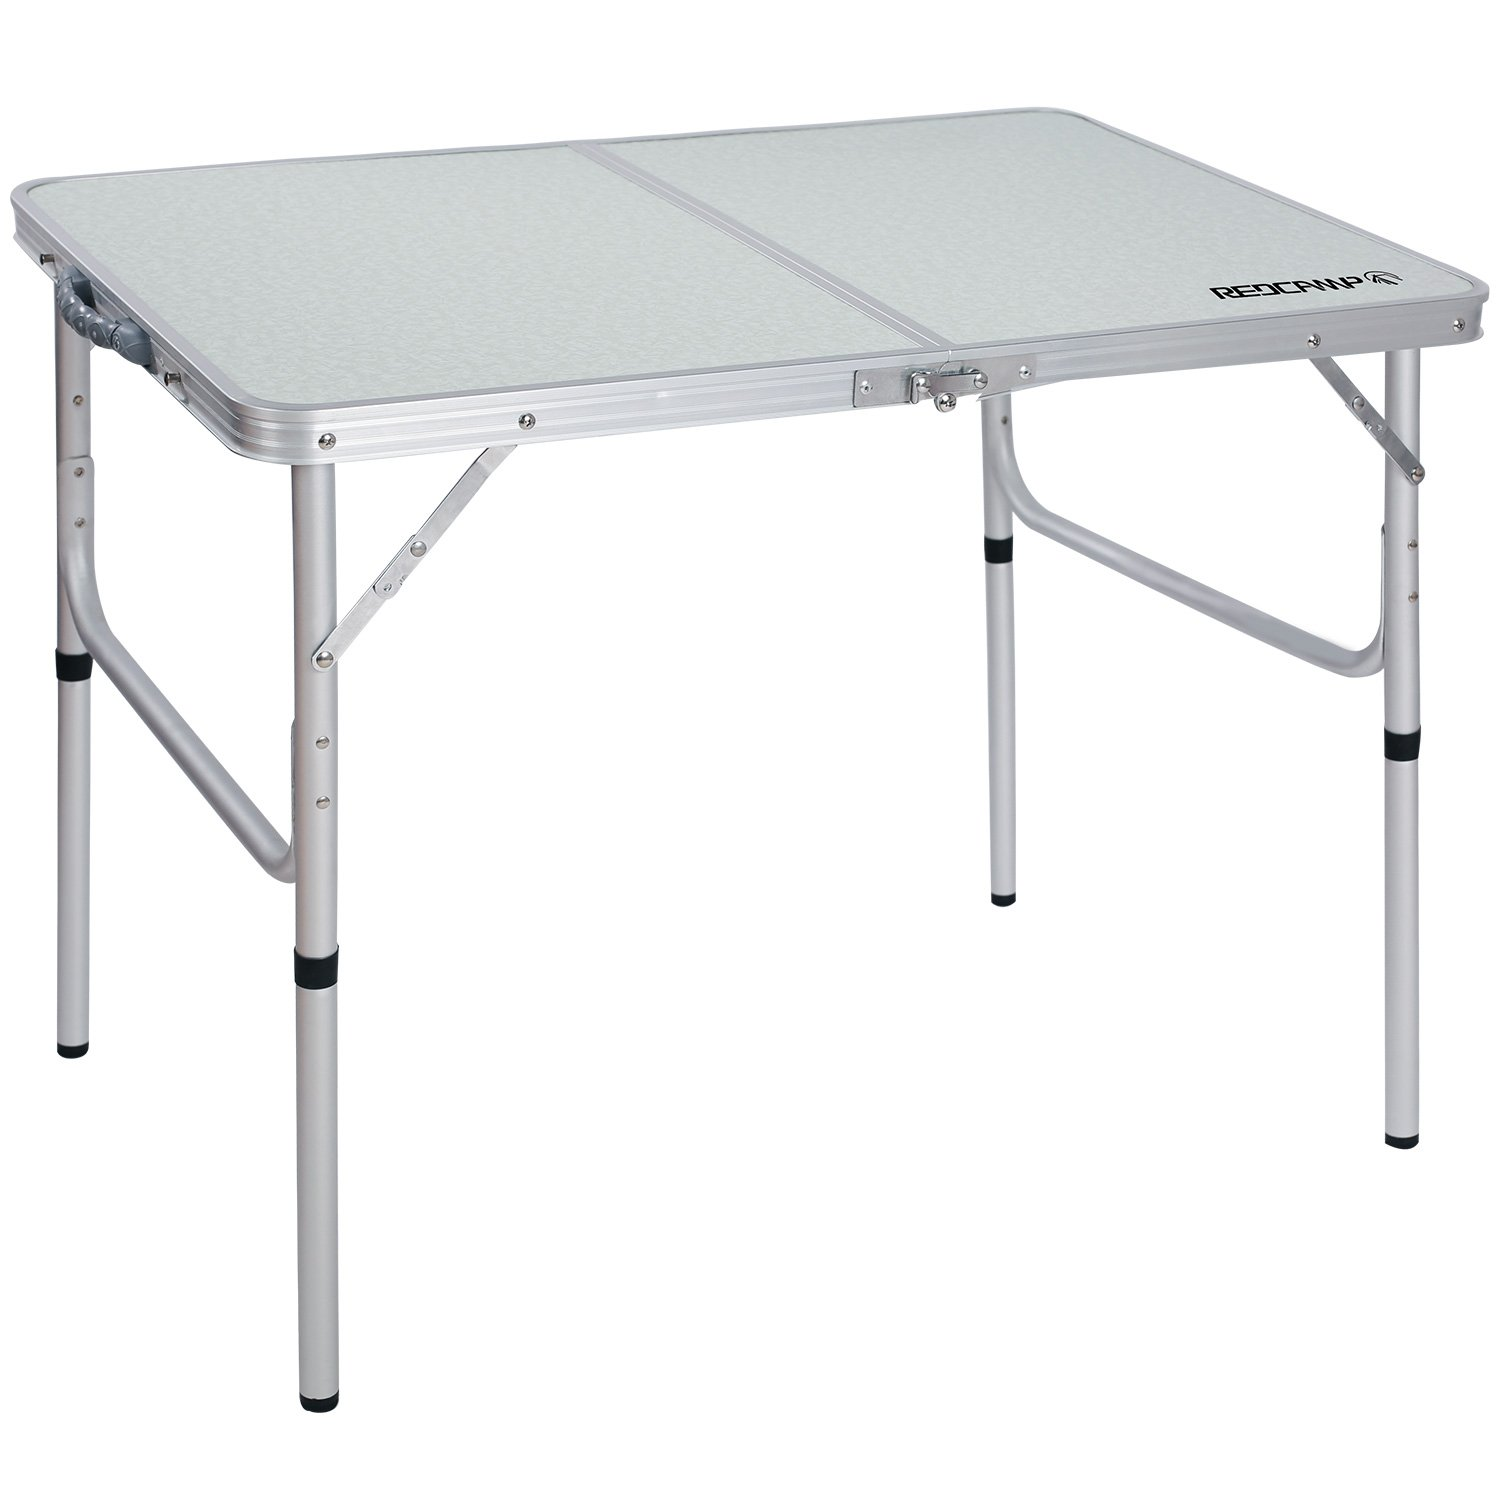 REDCAMP Aluminum Folding Table for Camping, Foldable and Adjustable,35.4''x23.6''x15''/27.6''